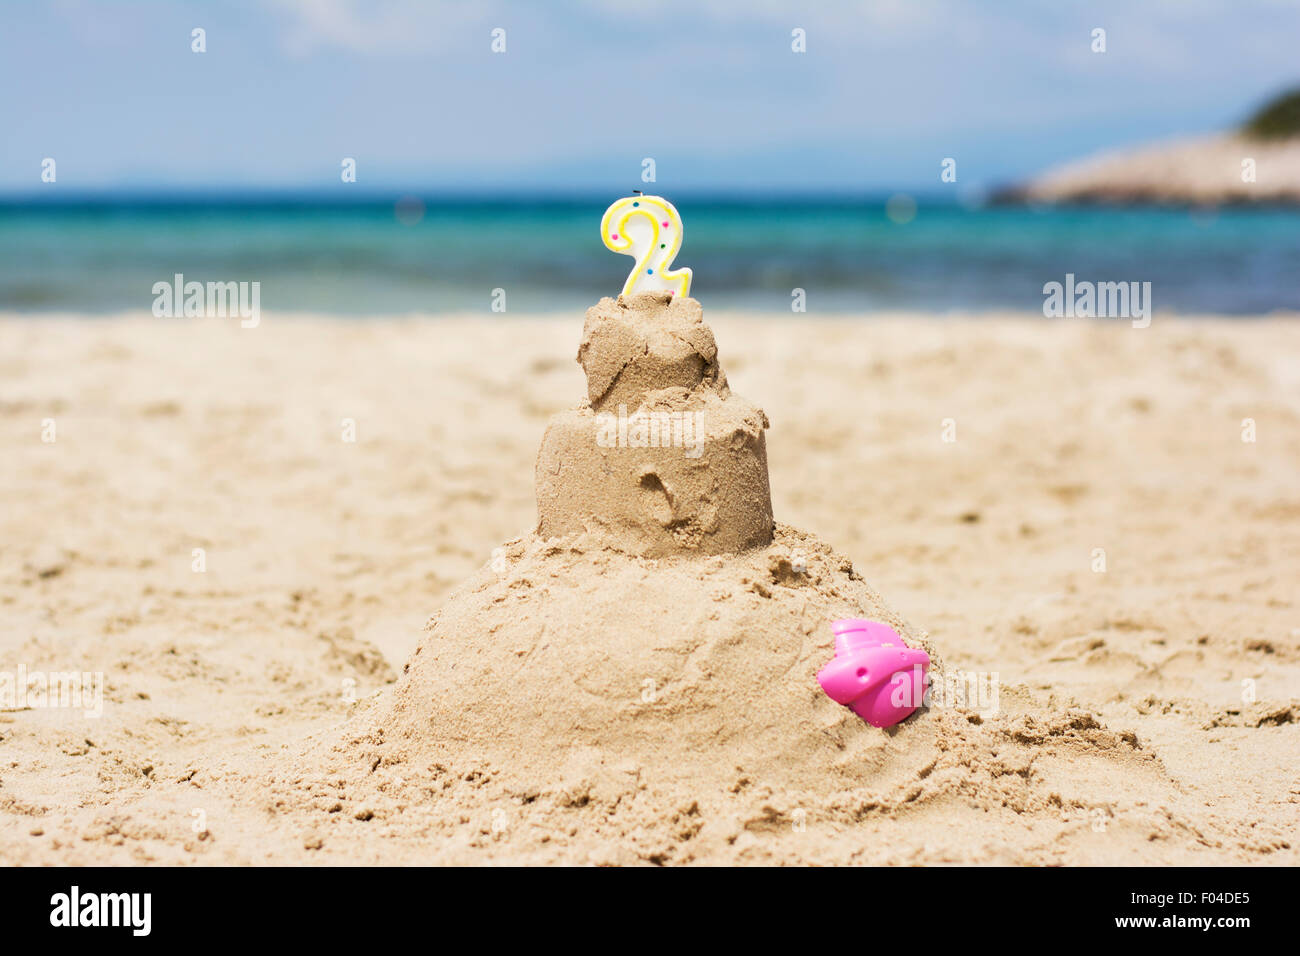 Awe Inspiring Sandy Birthday Cake With Candle Number Two On A Beach Stock Photo Funny Birthday Cards Online Necthendildamsfinfo